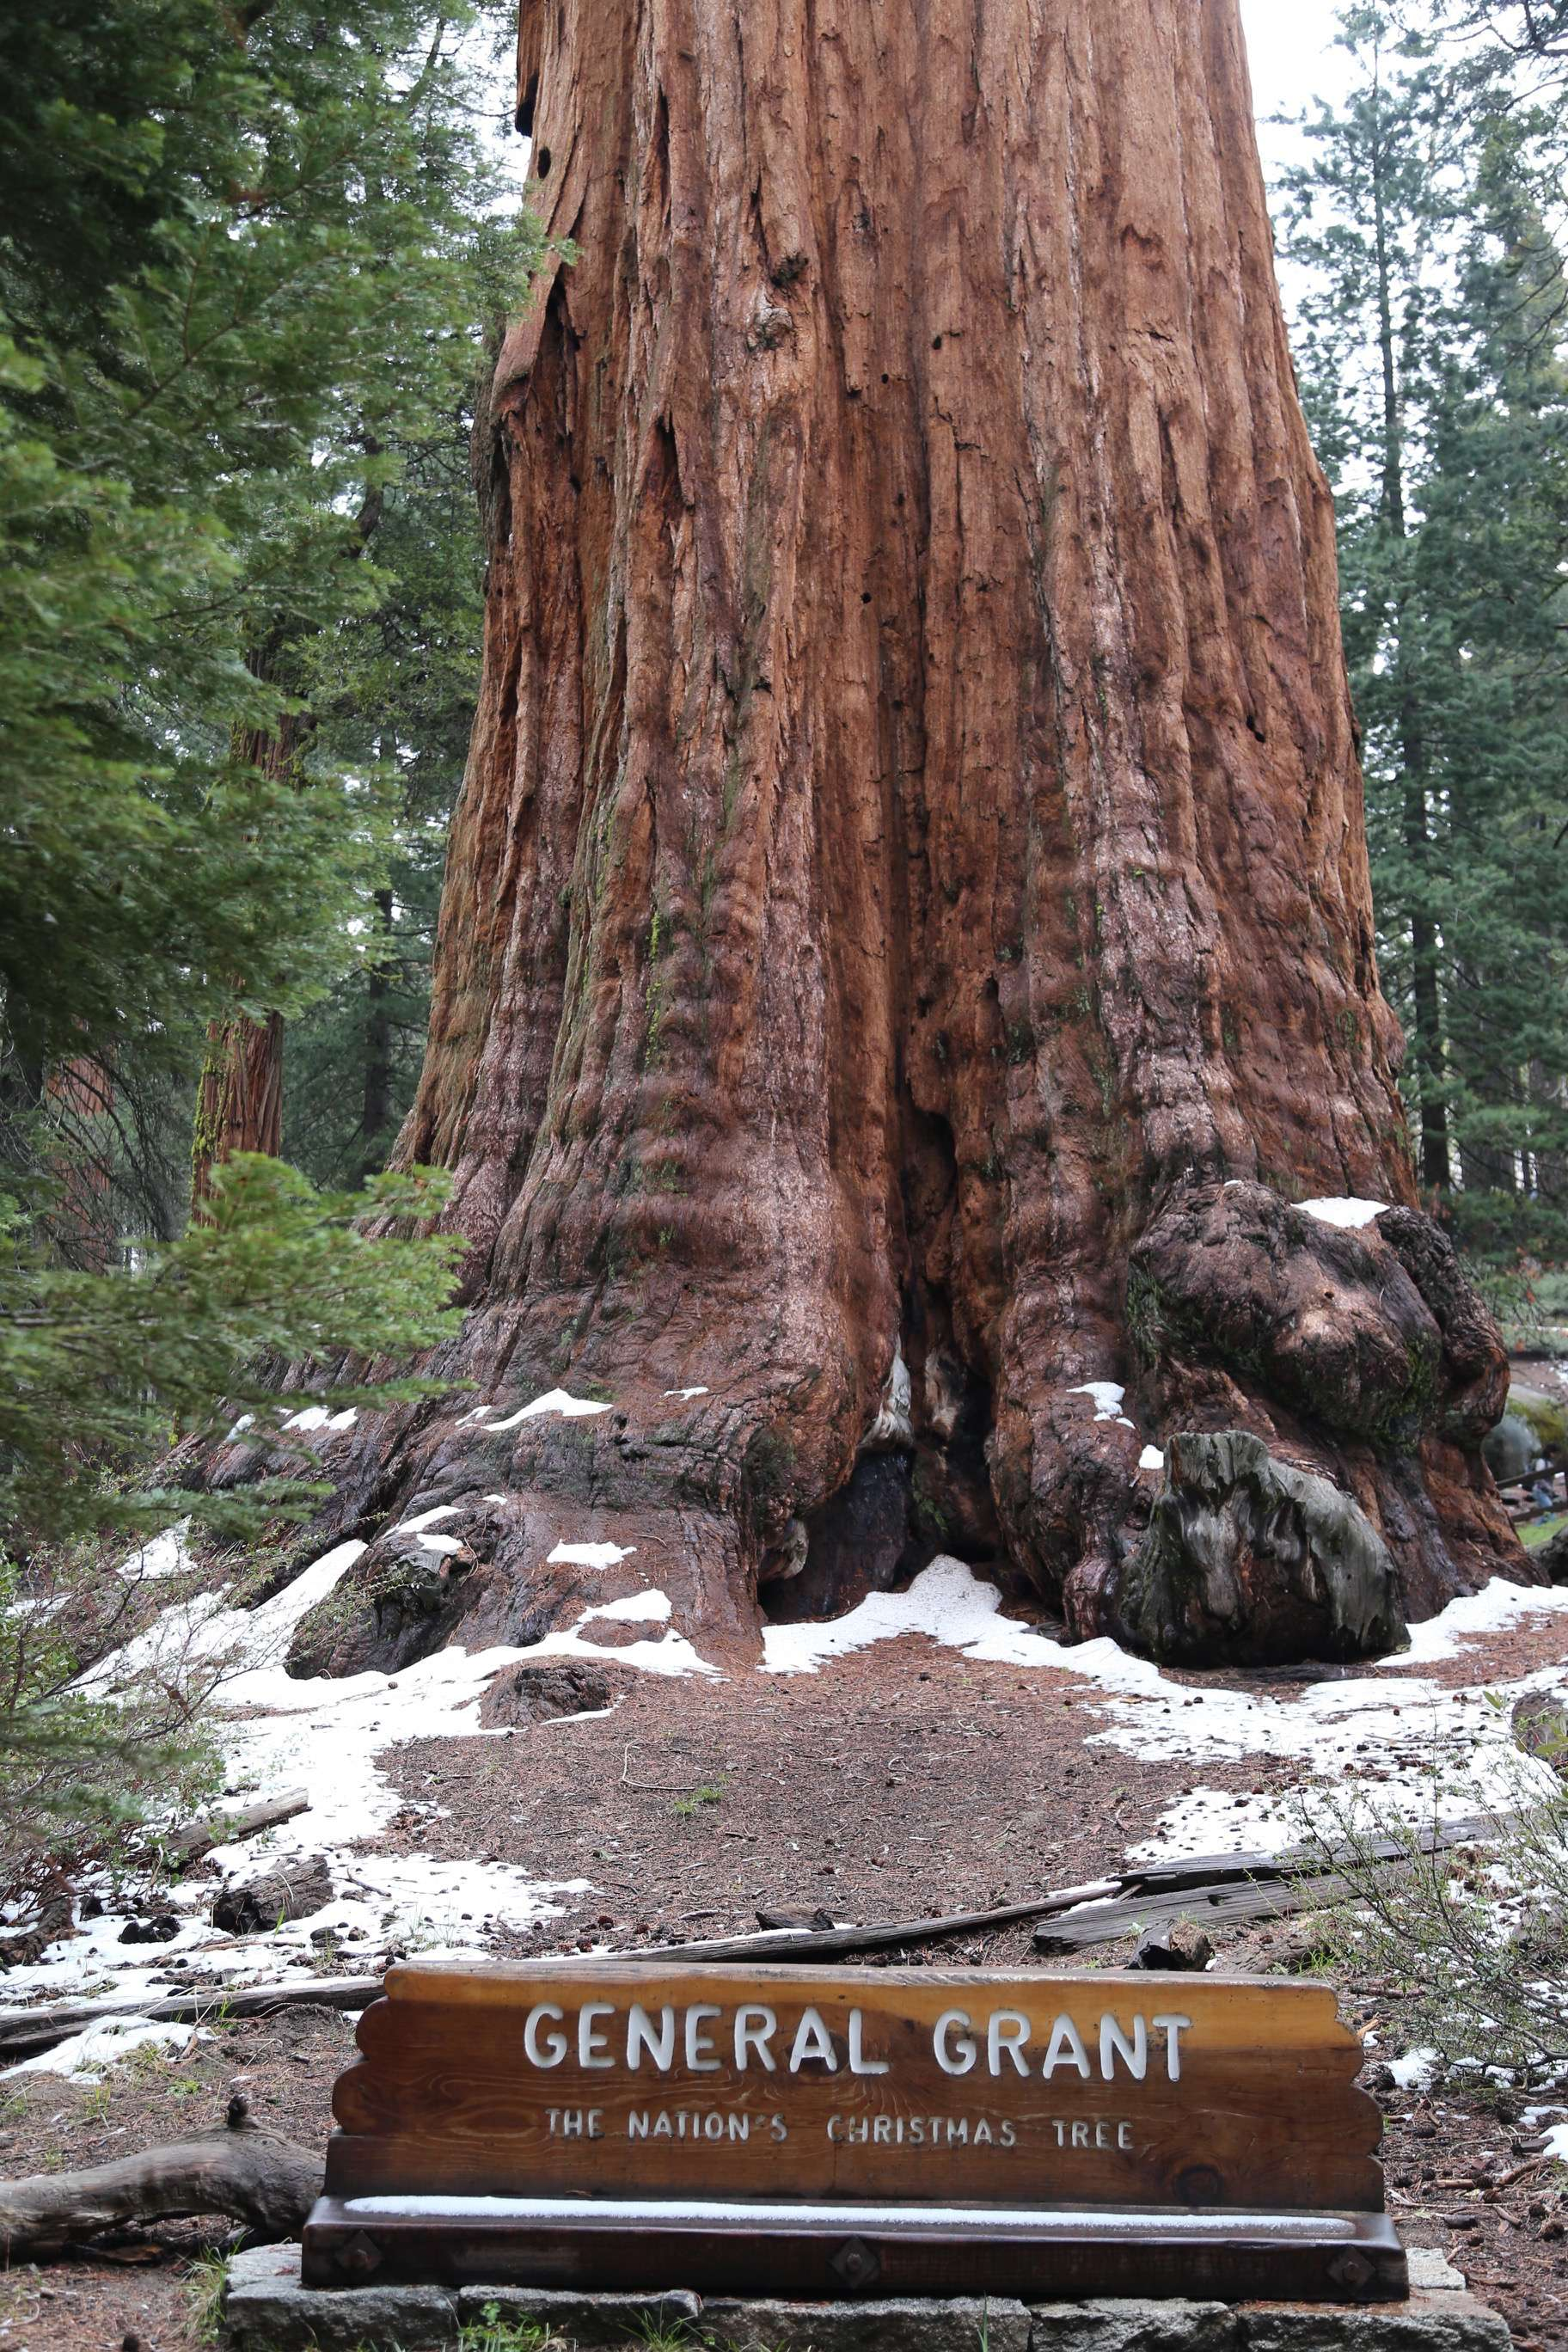 General Grant in Kings Canyon National Park is the largest giant sequoia there, and number two behind General Sherman.